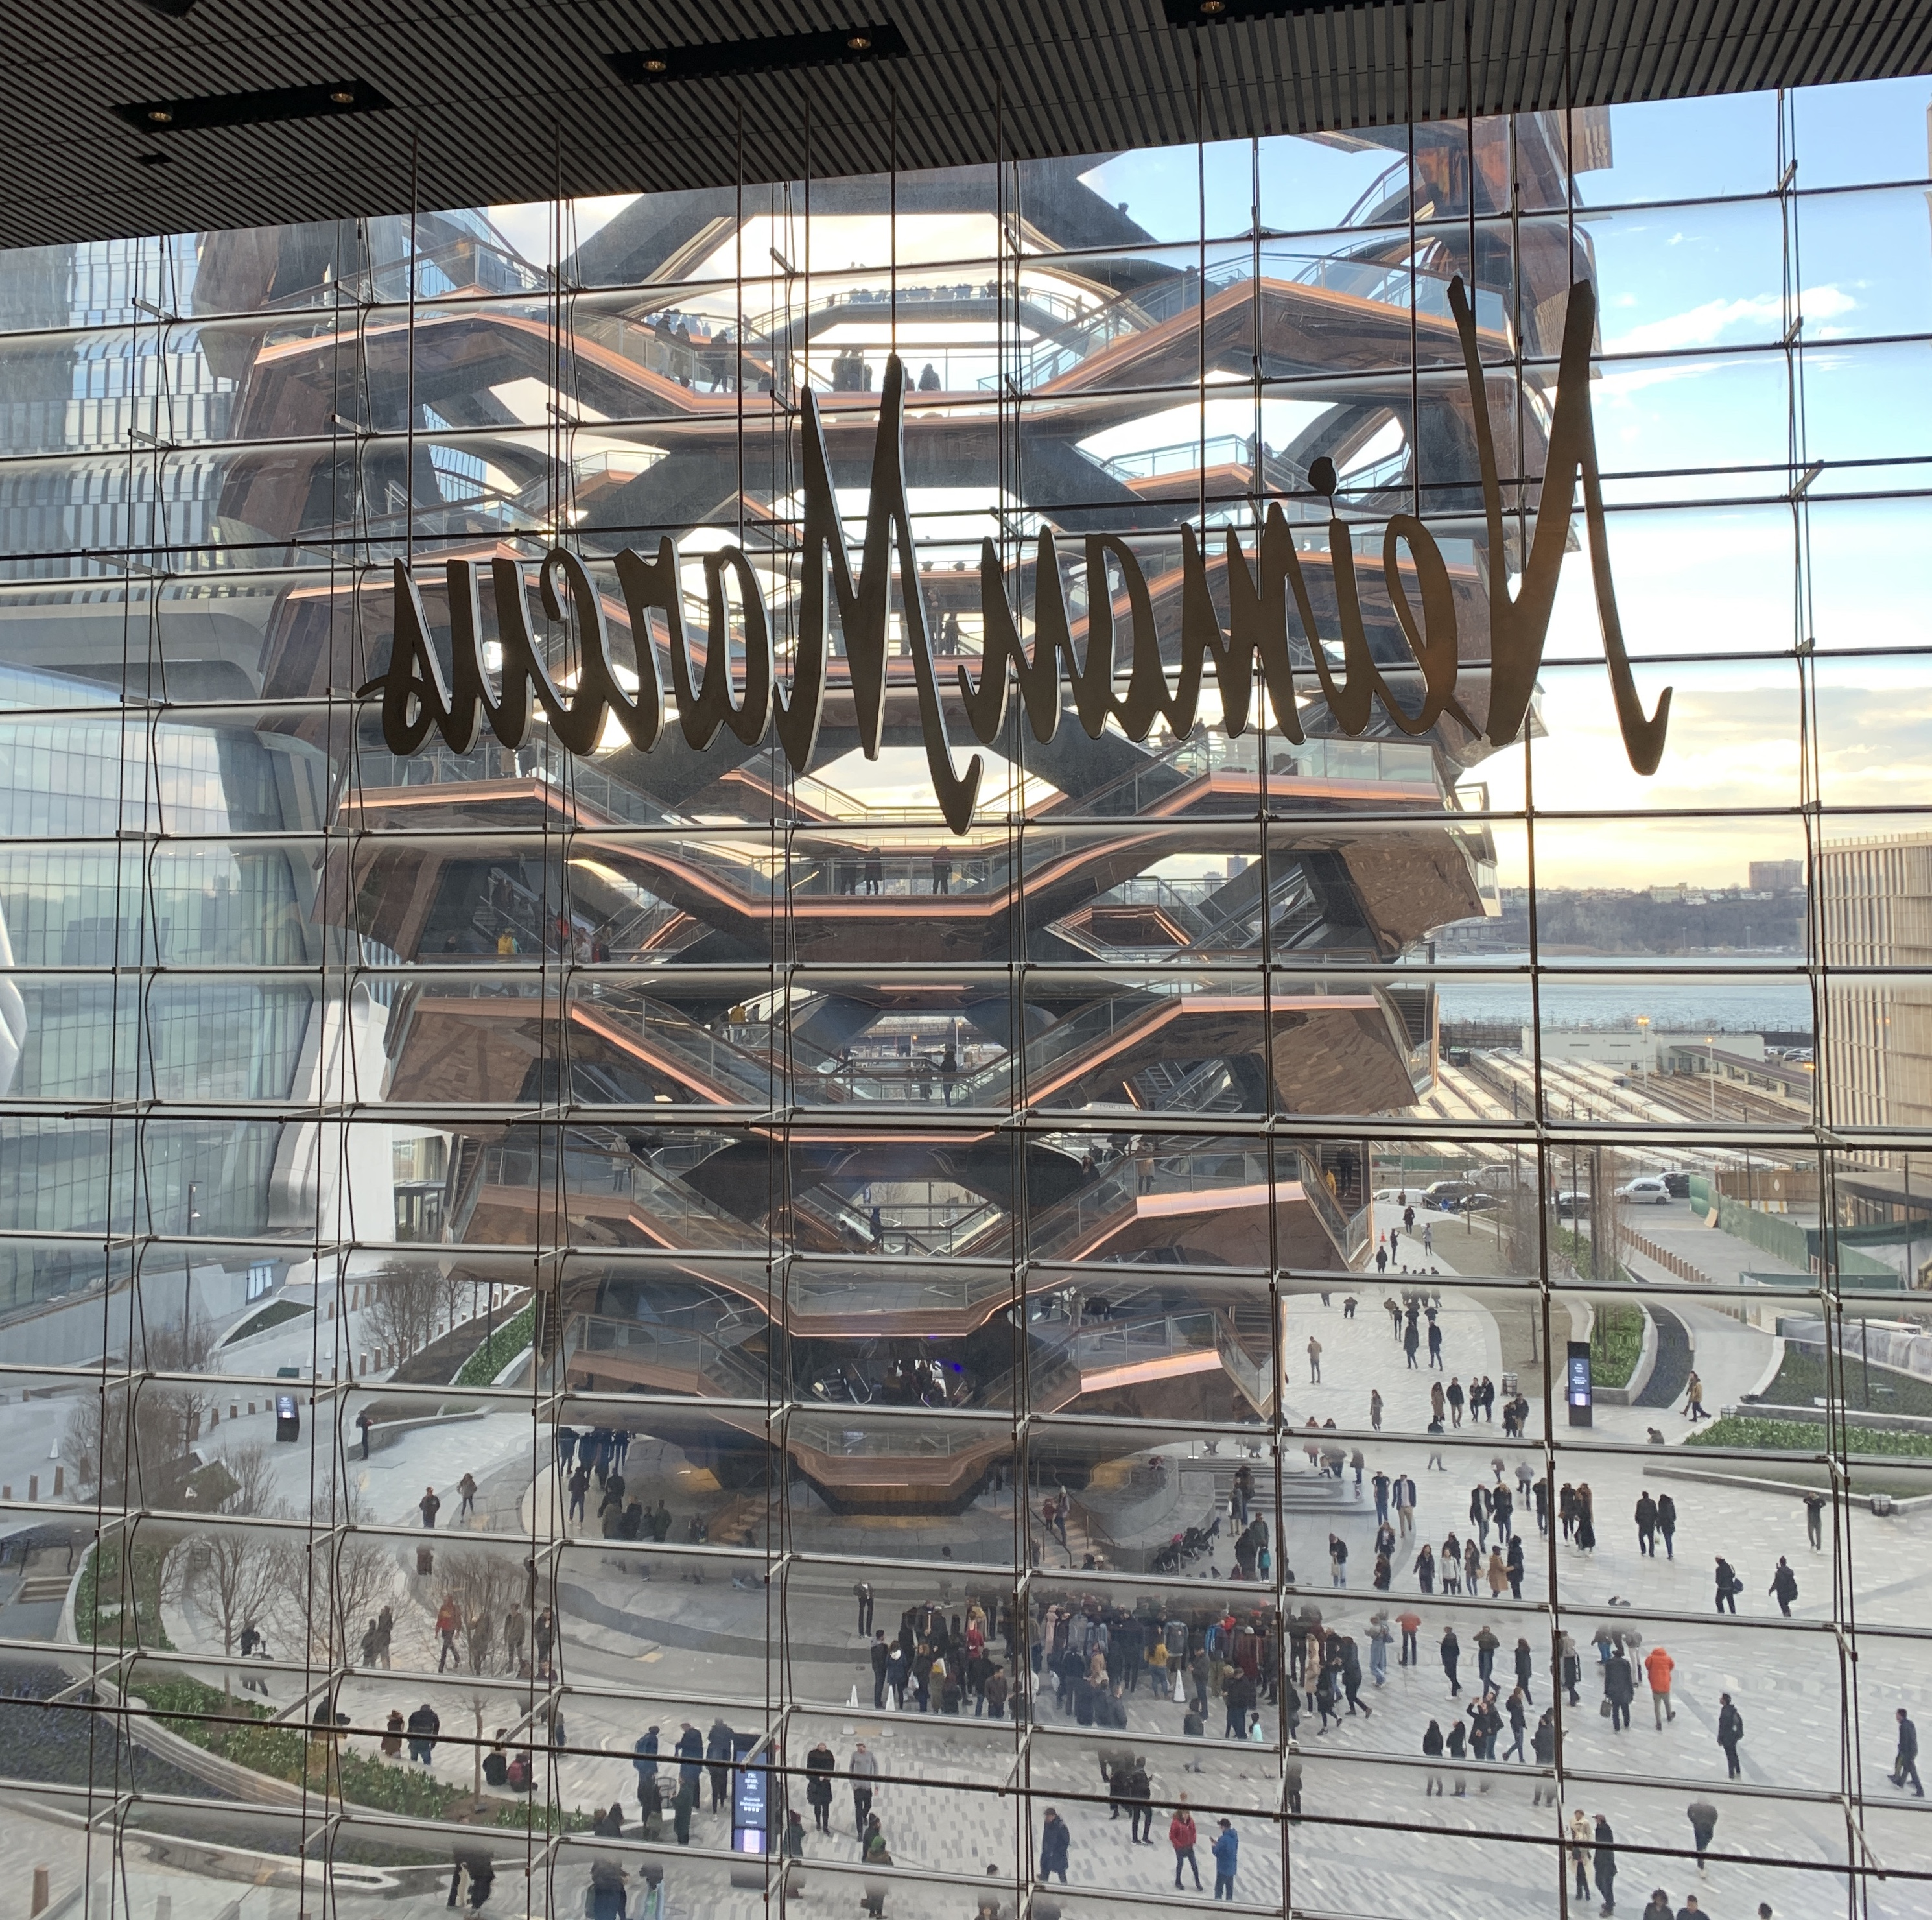 Stairway To Nowhere On The Pleasure Of Hating Thomas Heatherwick S Vessel In Hudson Yards